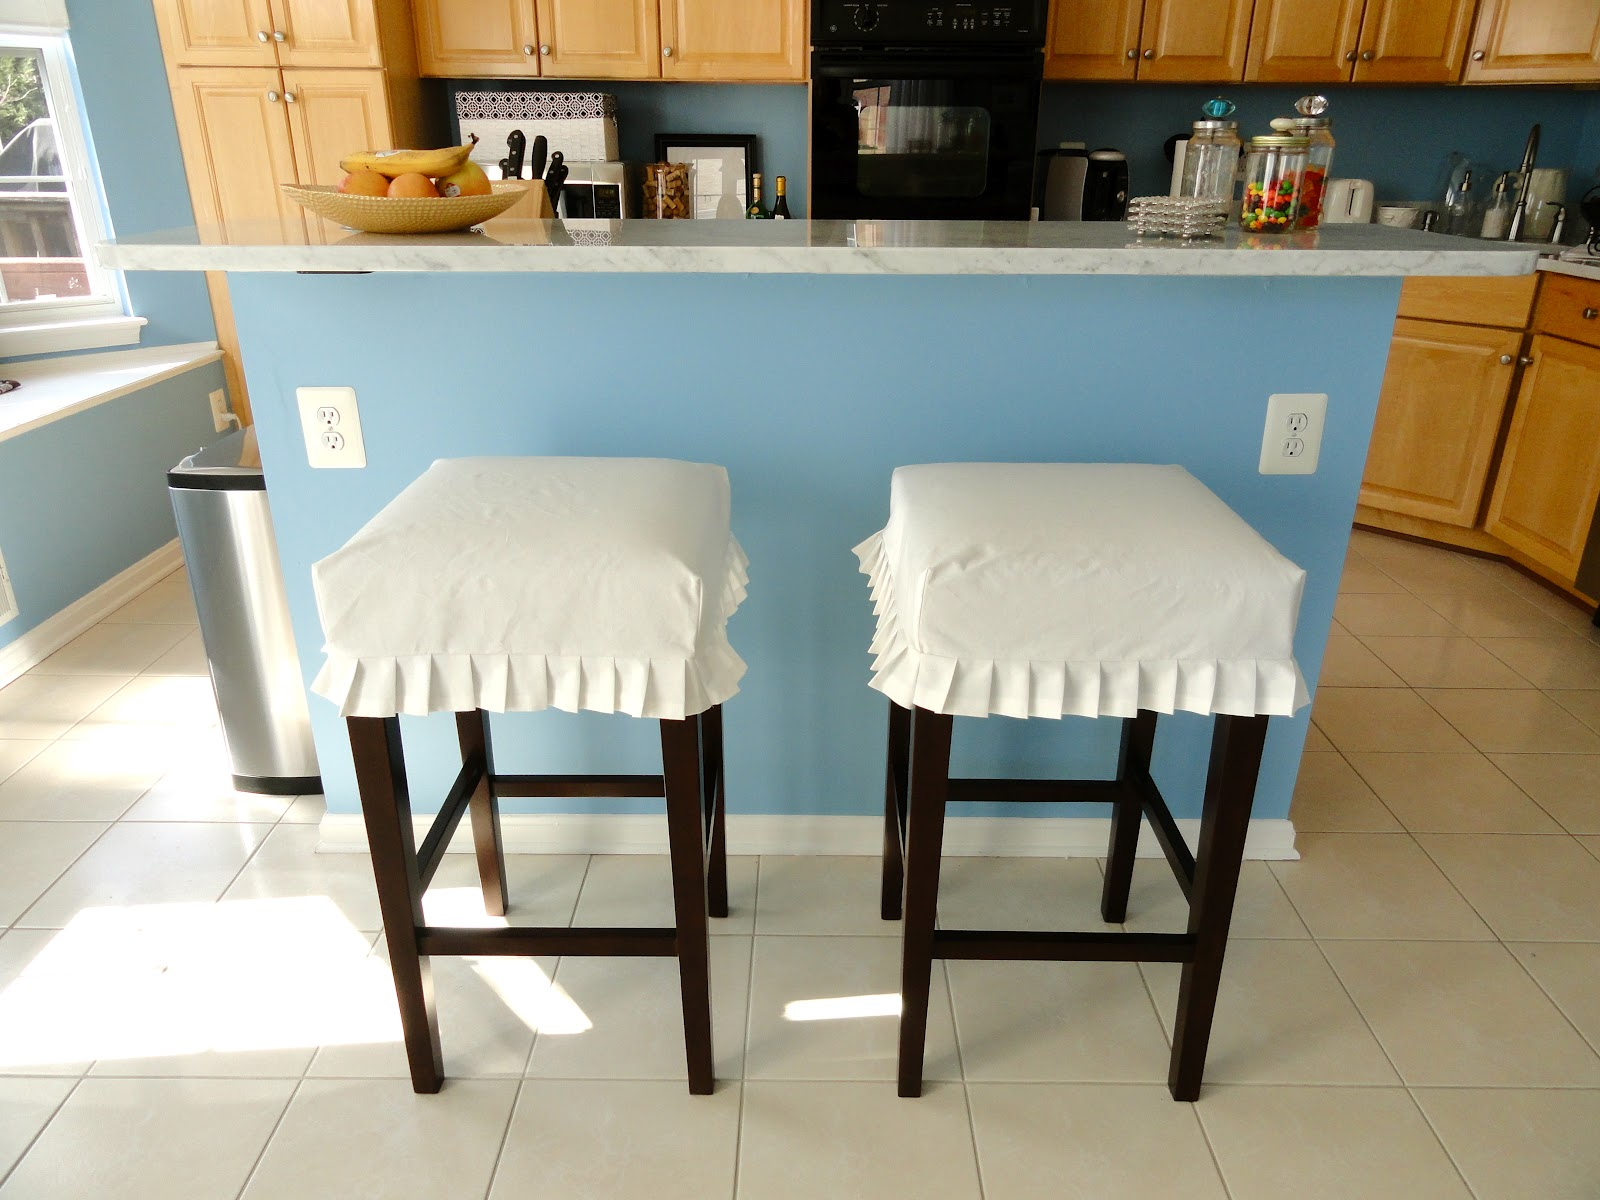 Bar Stools Target | Stools with Backs | Seagrass Bar Stools